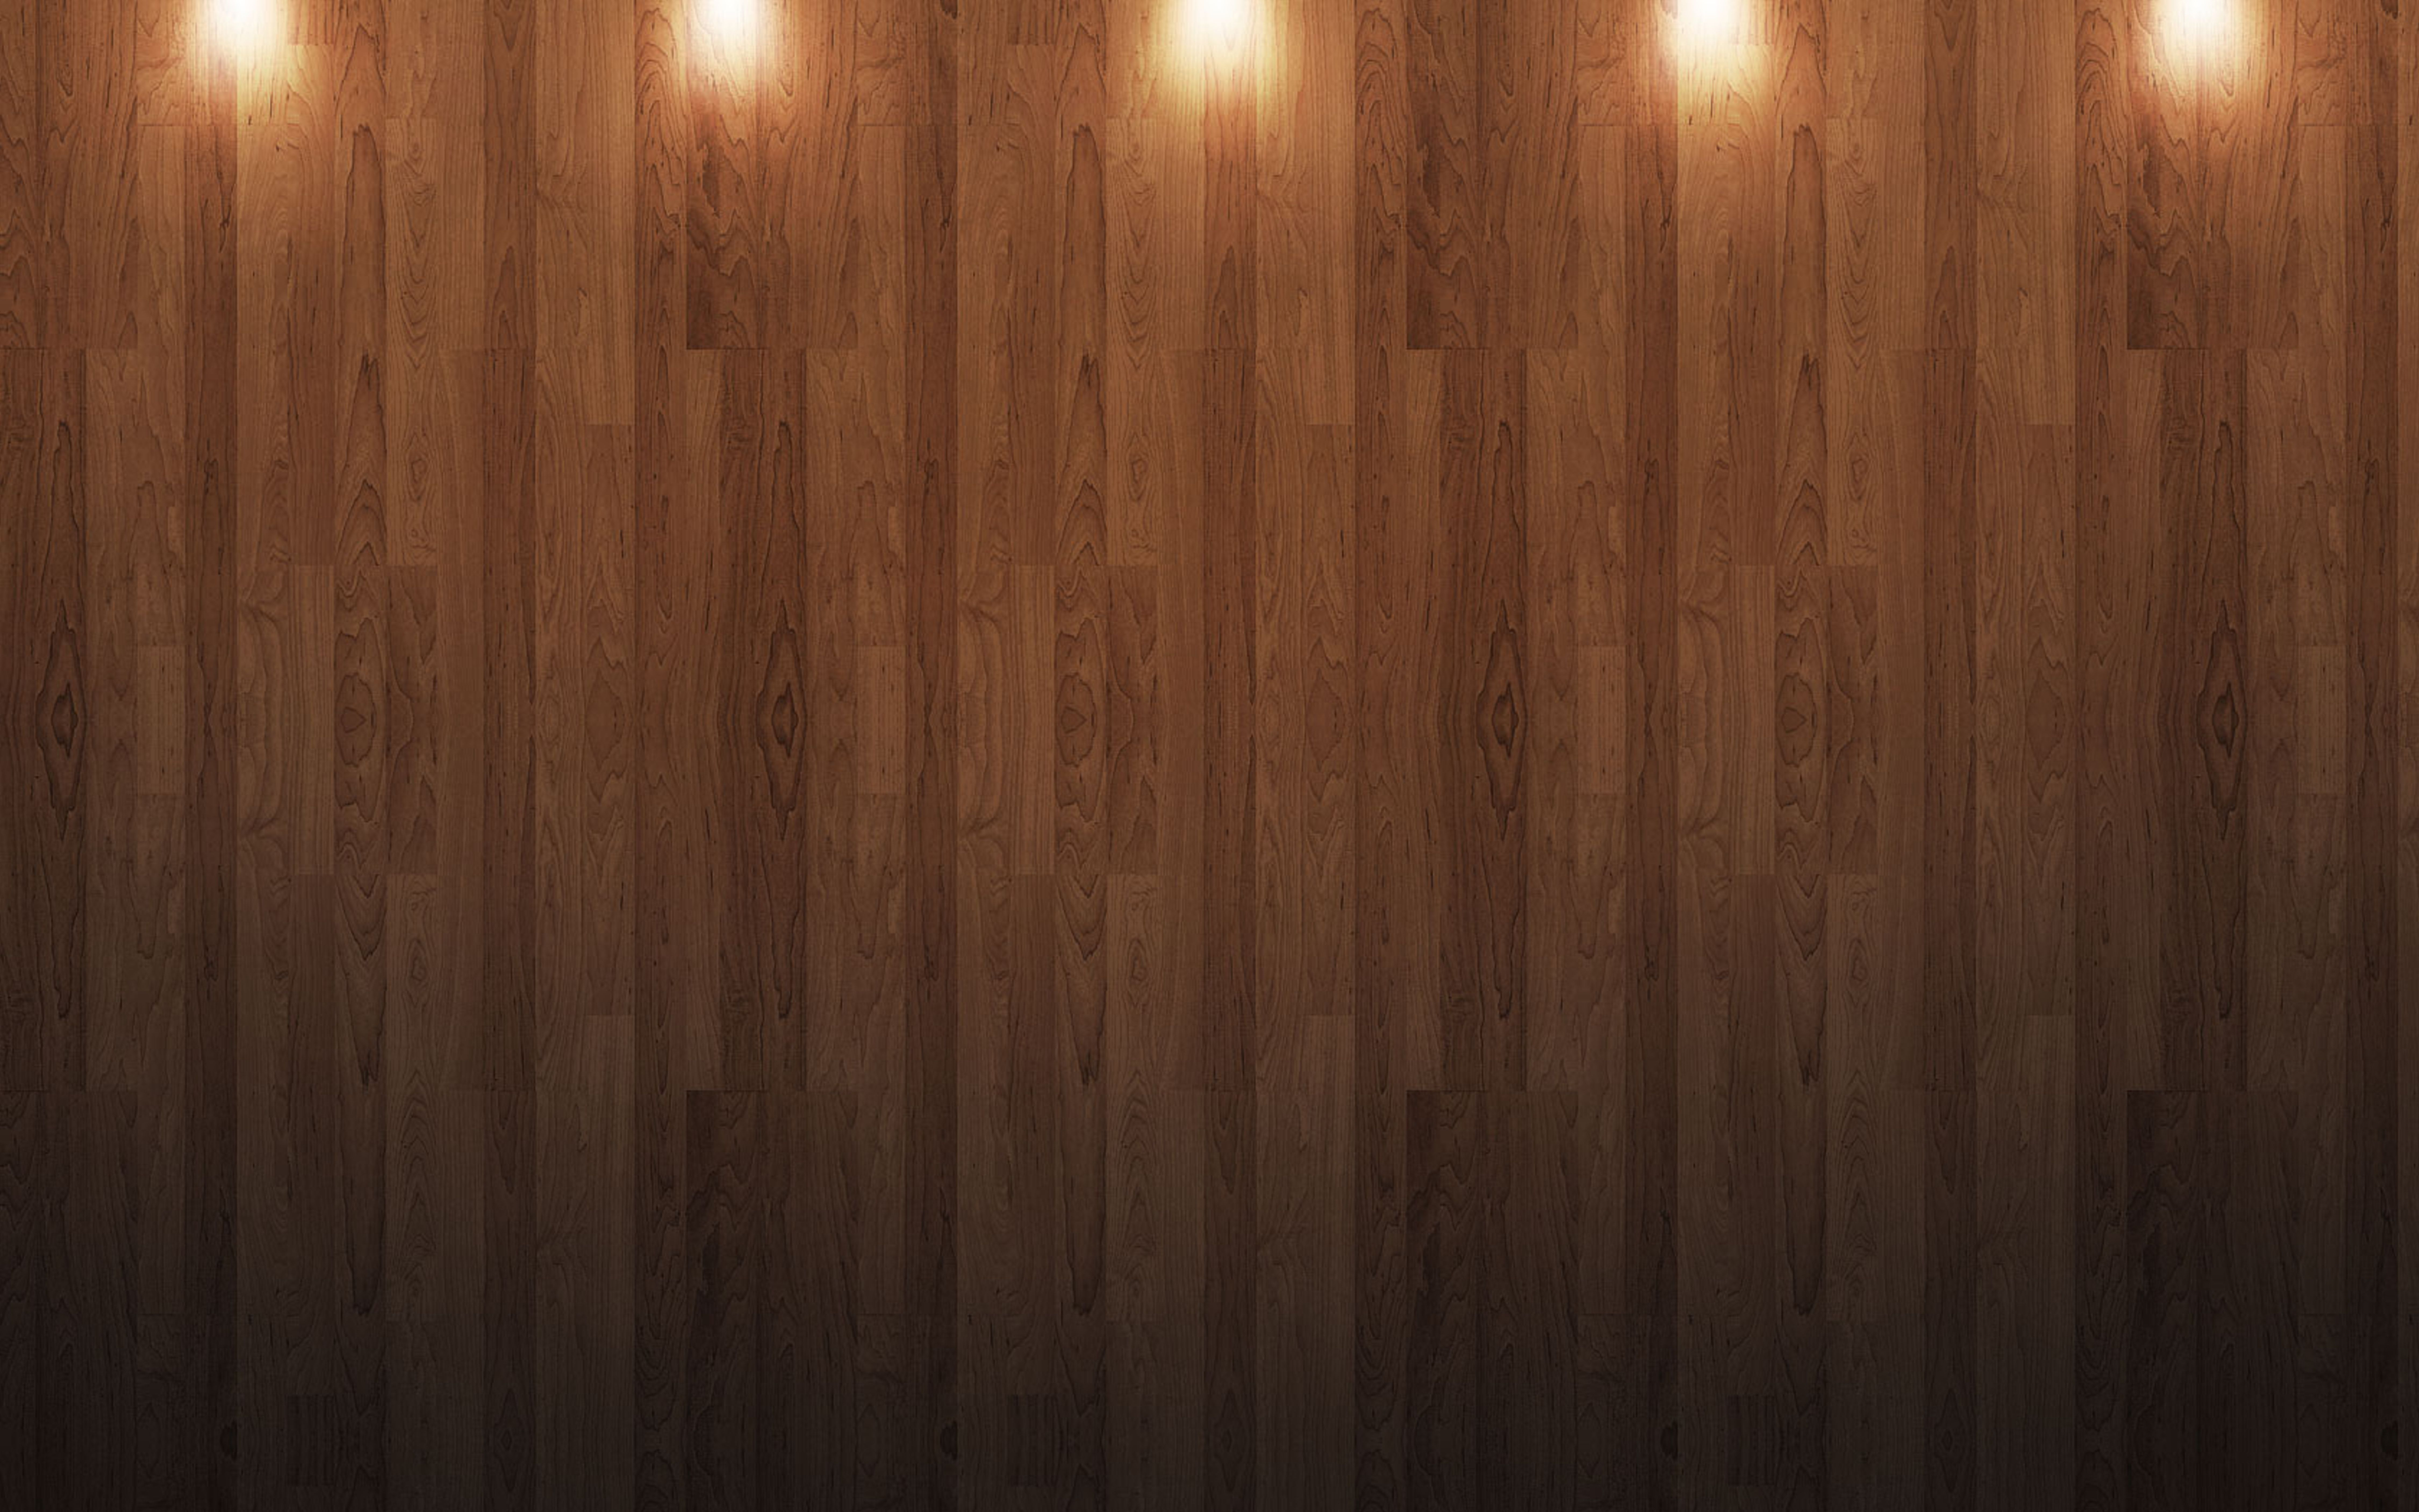 Abstract Wood Picture Wood Wallpaper Wooden Wallpaper Hardwood